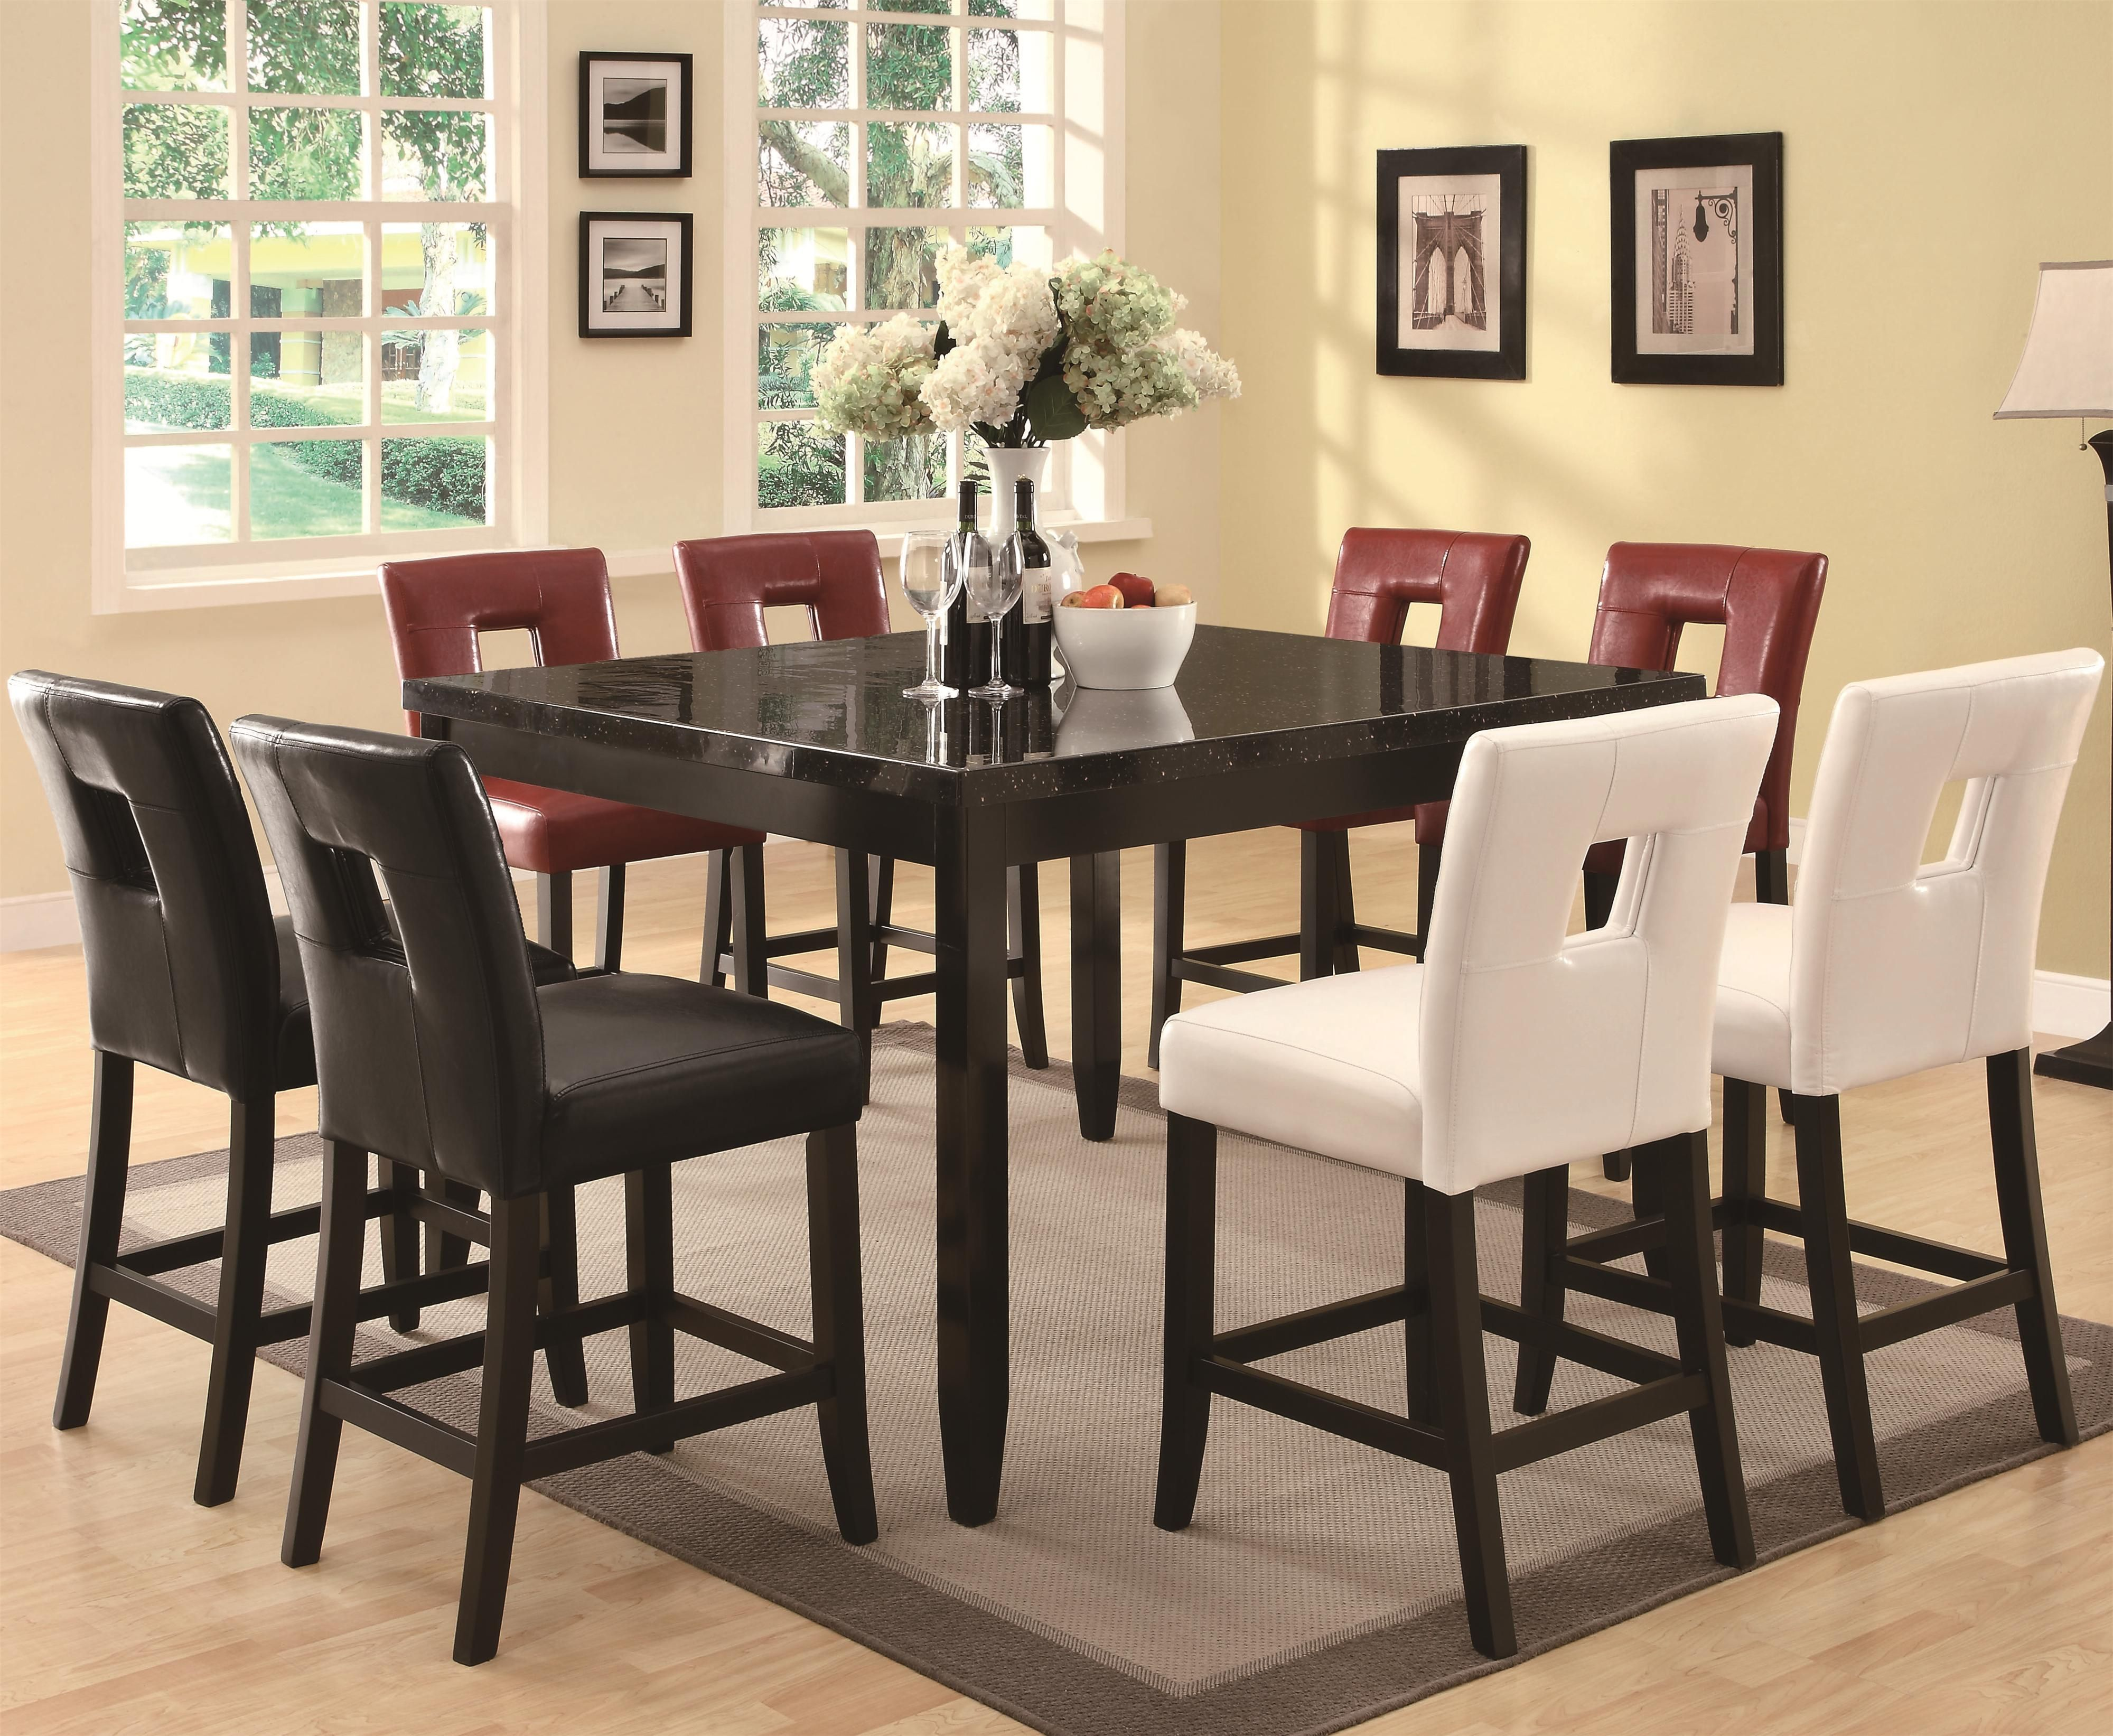 Newbridge 7 Piece Pub Tablecoaster  Dad's  Pinterest Awesome Counter Height Kitchen Tables Design Inspiration